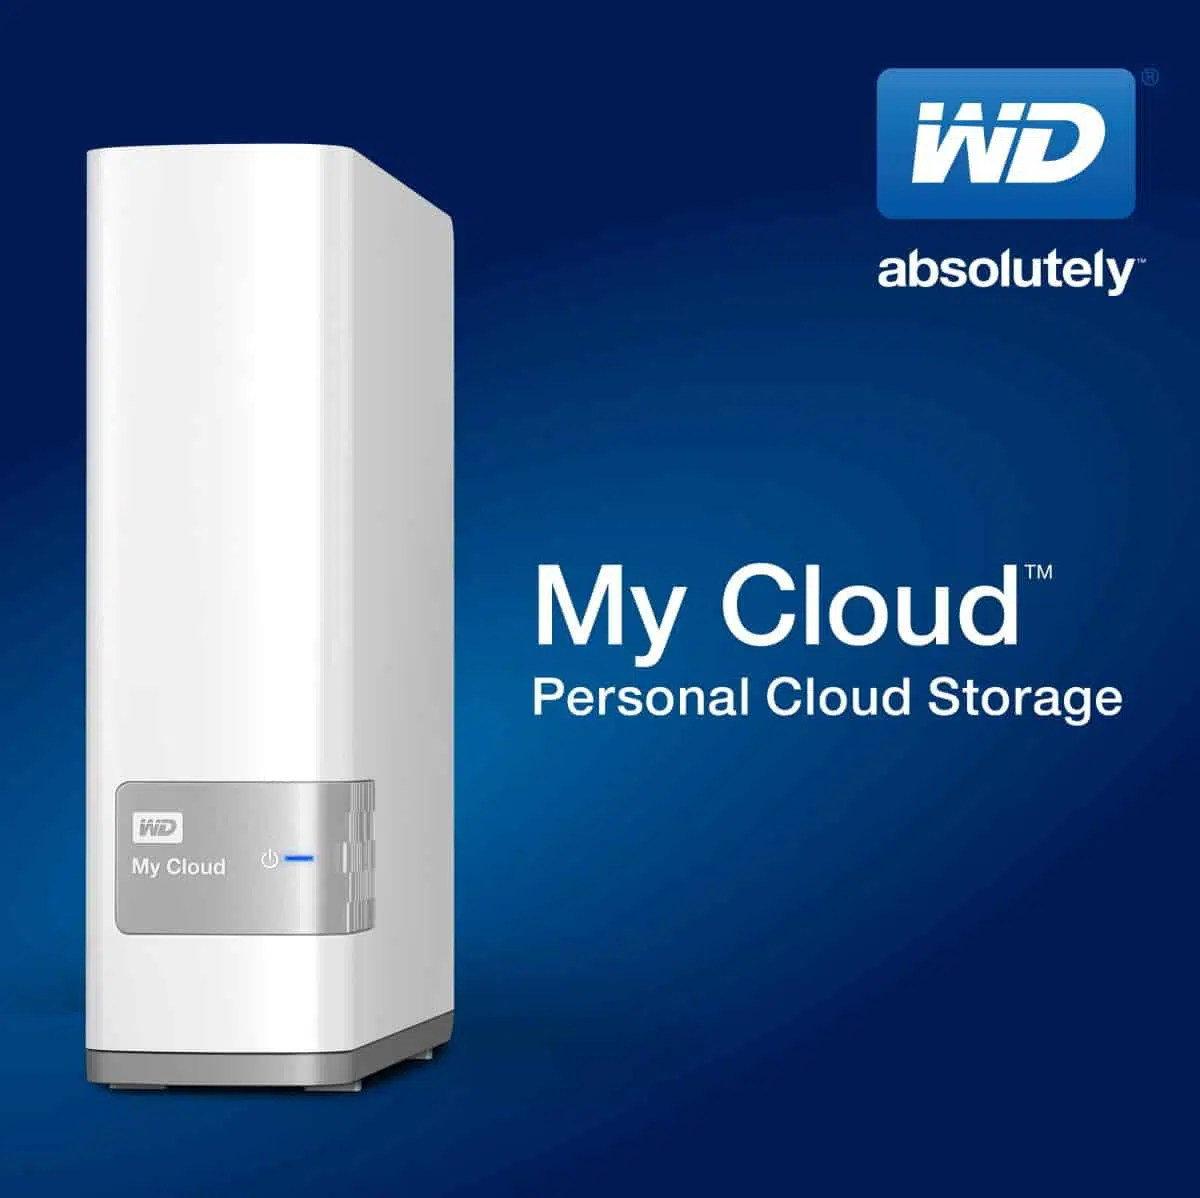 WD My Cloud Solid Red Light On | Data Medics Recovery